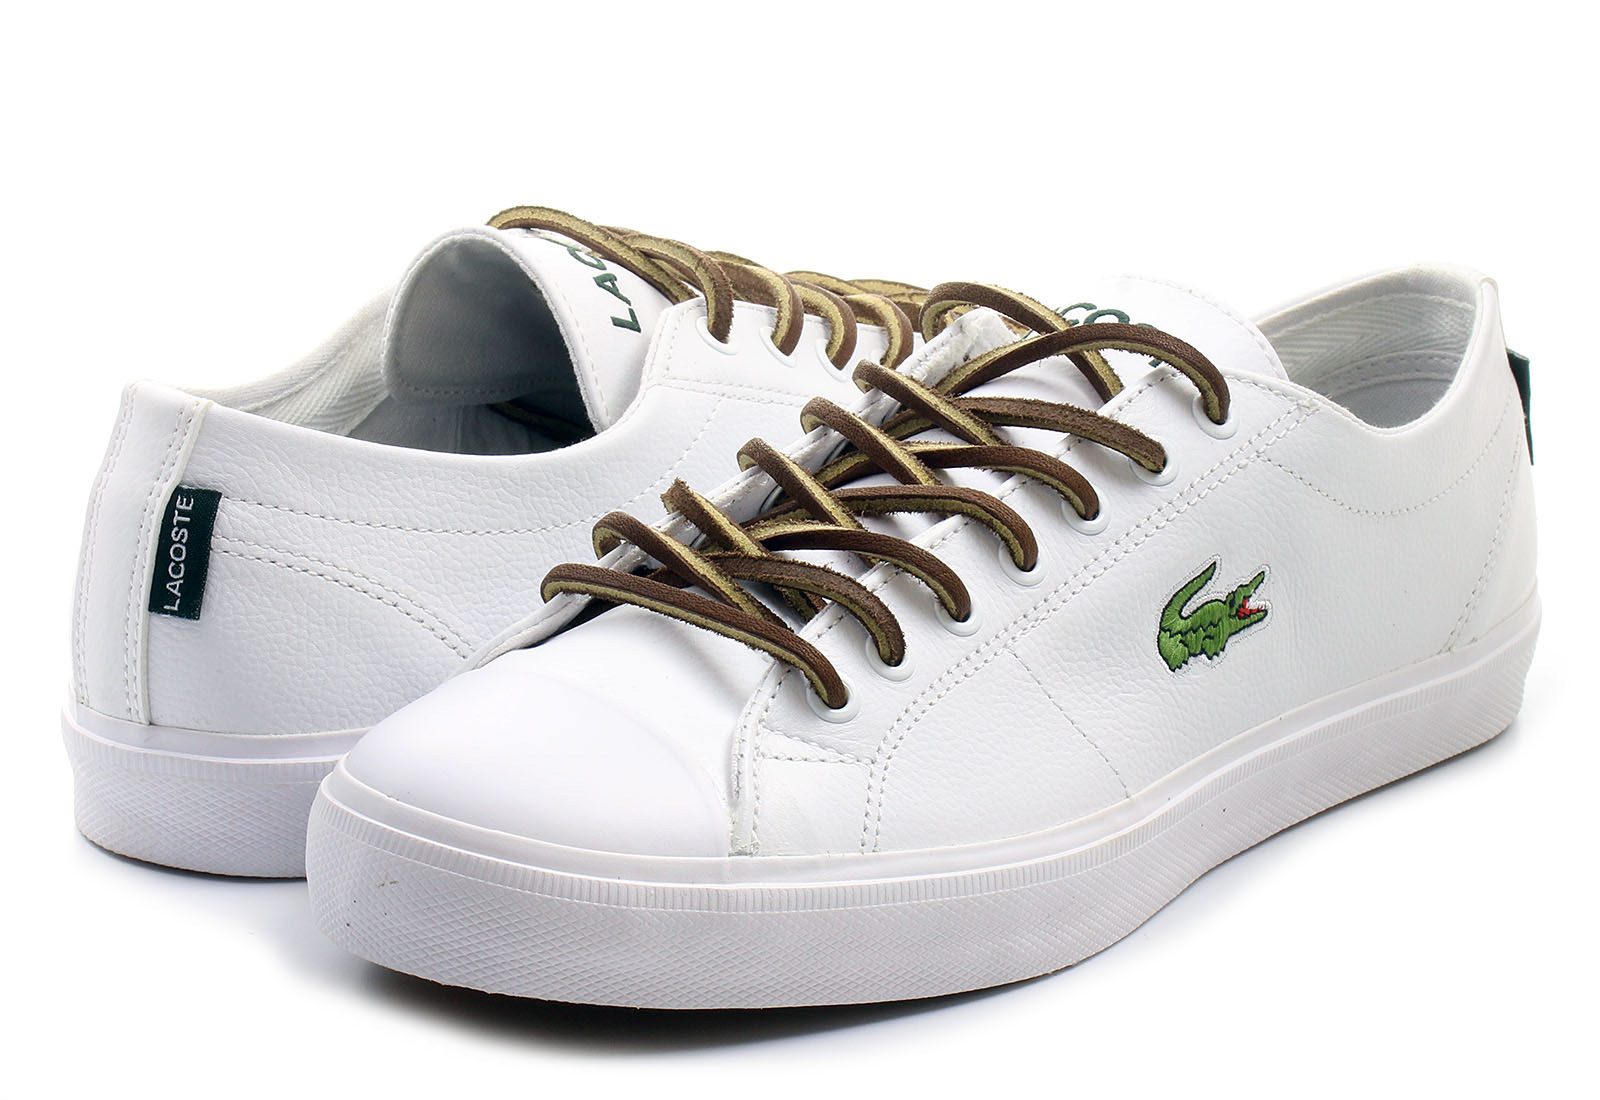 524481e1 Lacoste Sneakers - Marcel Chunky Leather - 151spm0065-21g - Online shop for  sneakers, shoes and boots